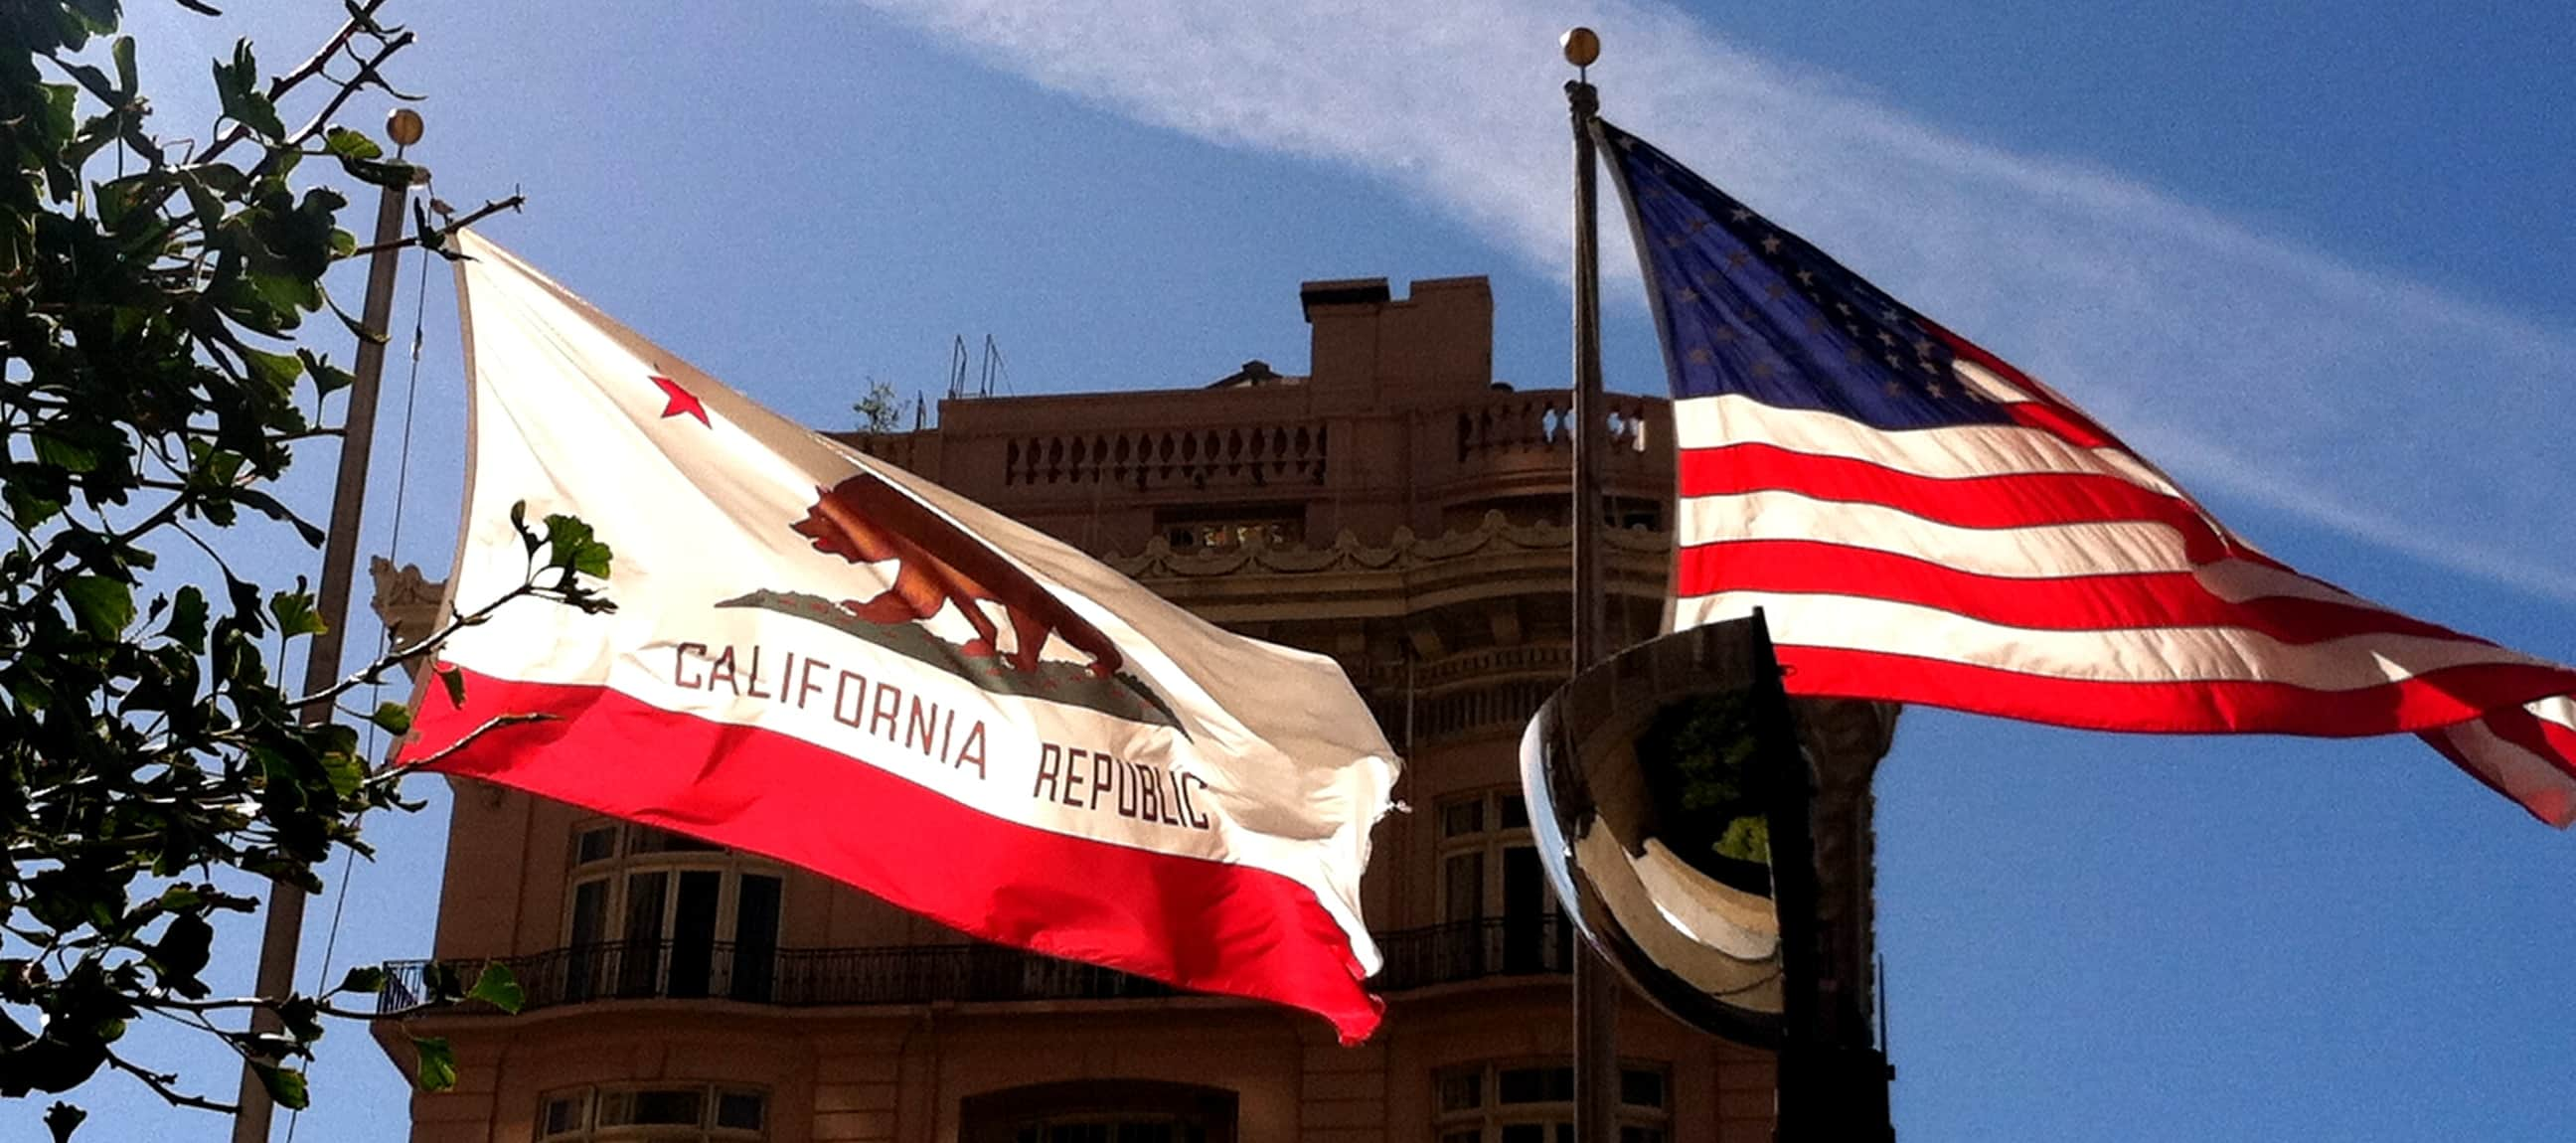 What It S Like To Live In California The Wherever Writer Here are the 10 most popular states californians decided to call home in 2016. what it s like to live in california